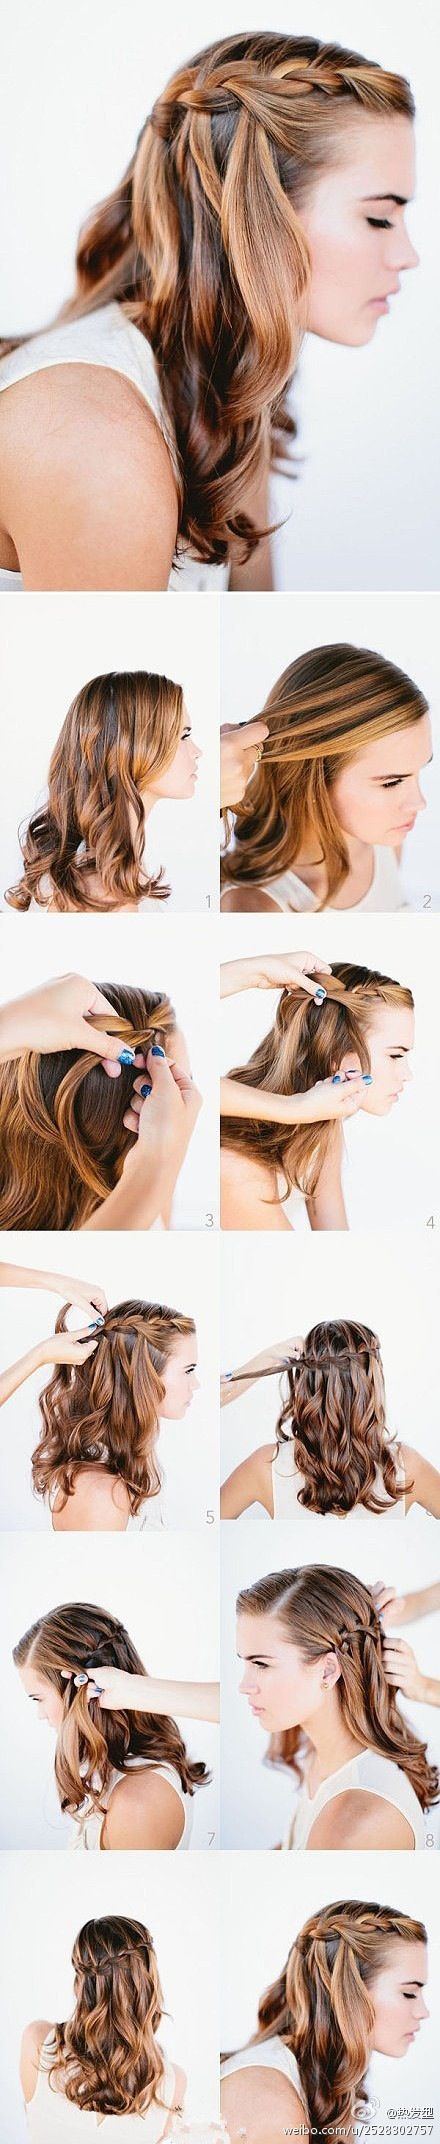 About How to braid